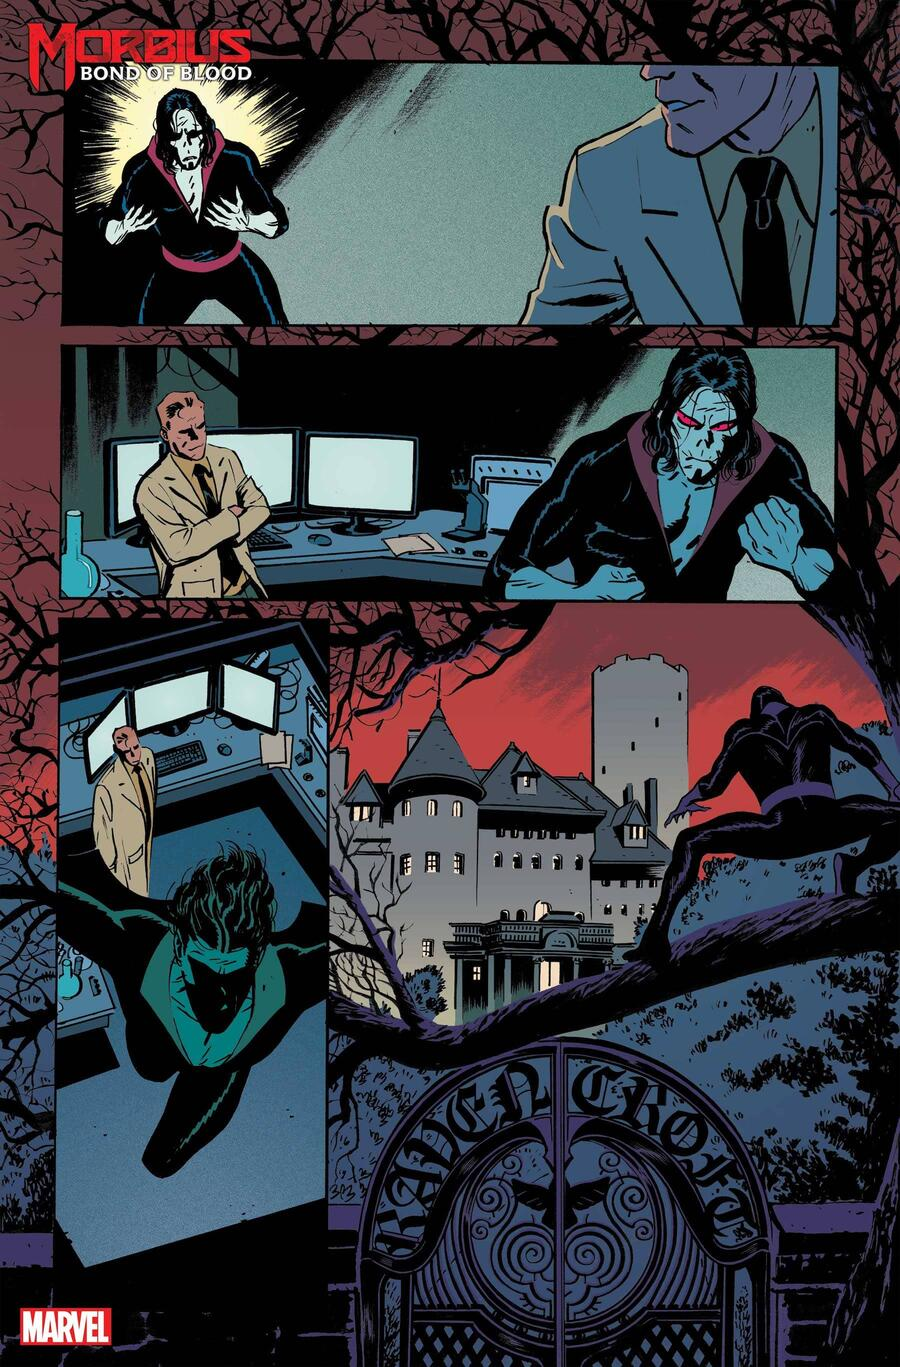 MORBIUS: BOND OF BLOOD #1 preview art by Tom Reilly with colors by Chris O'Halloran